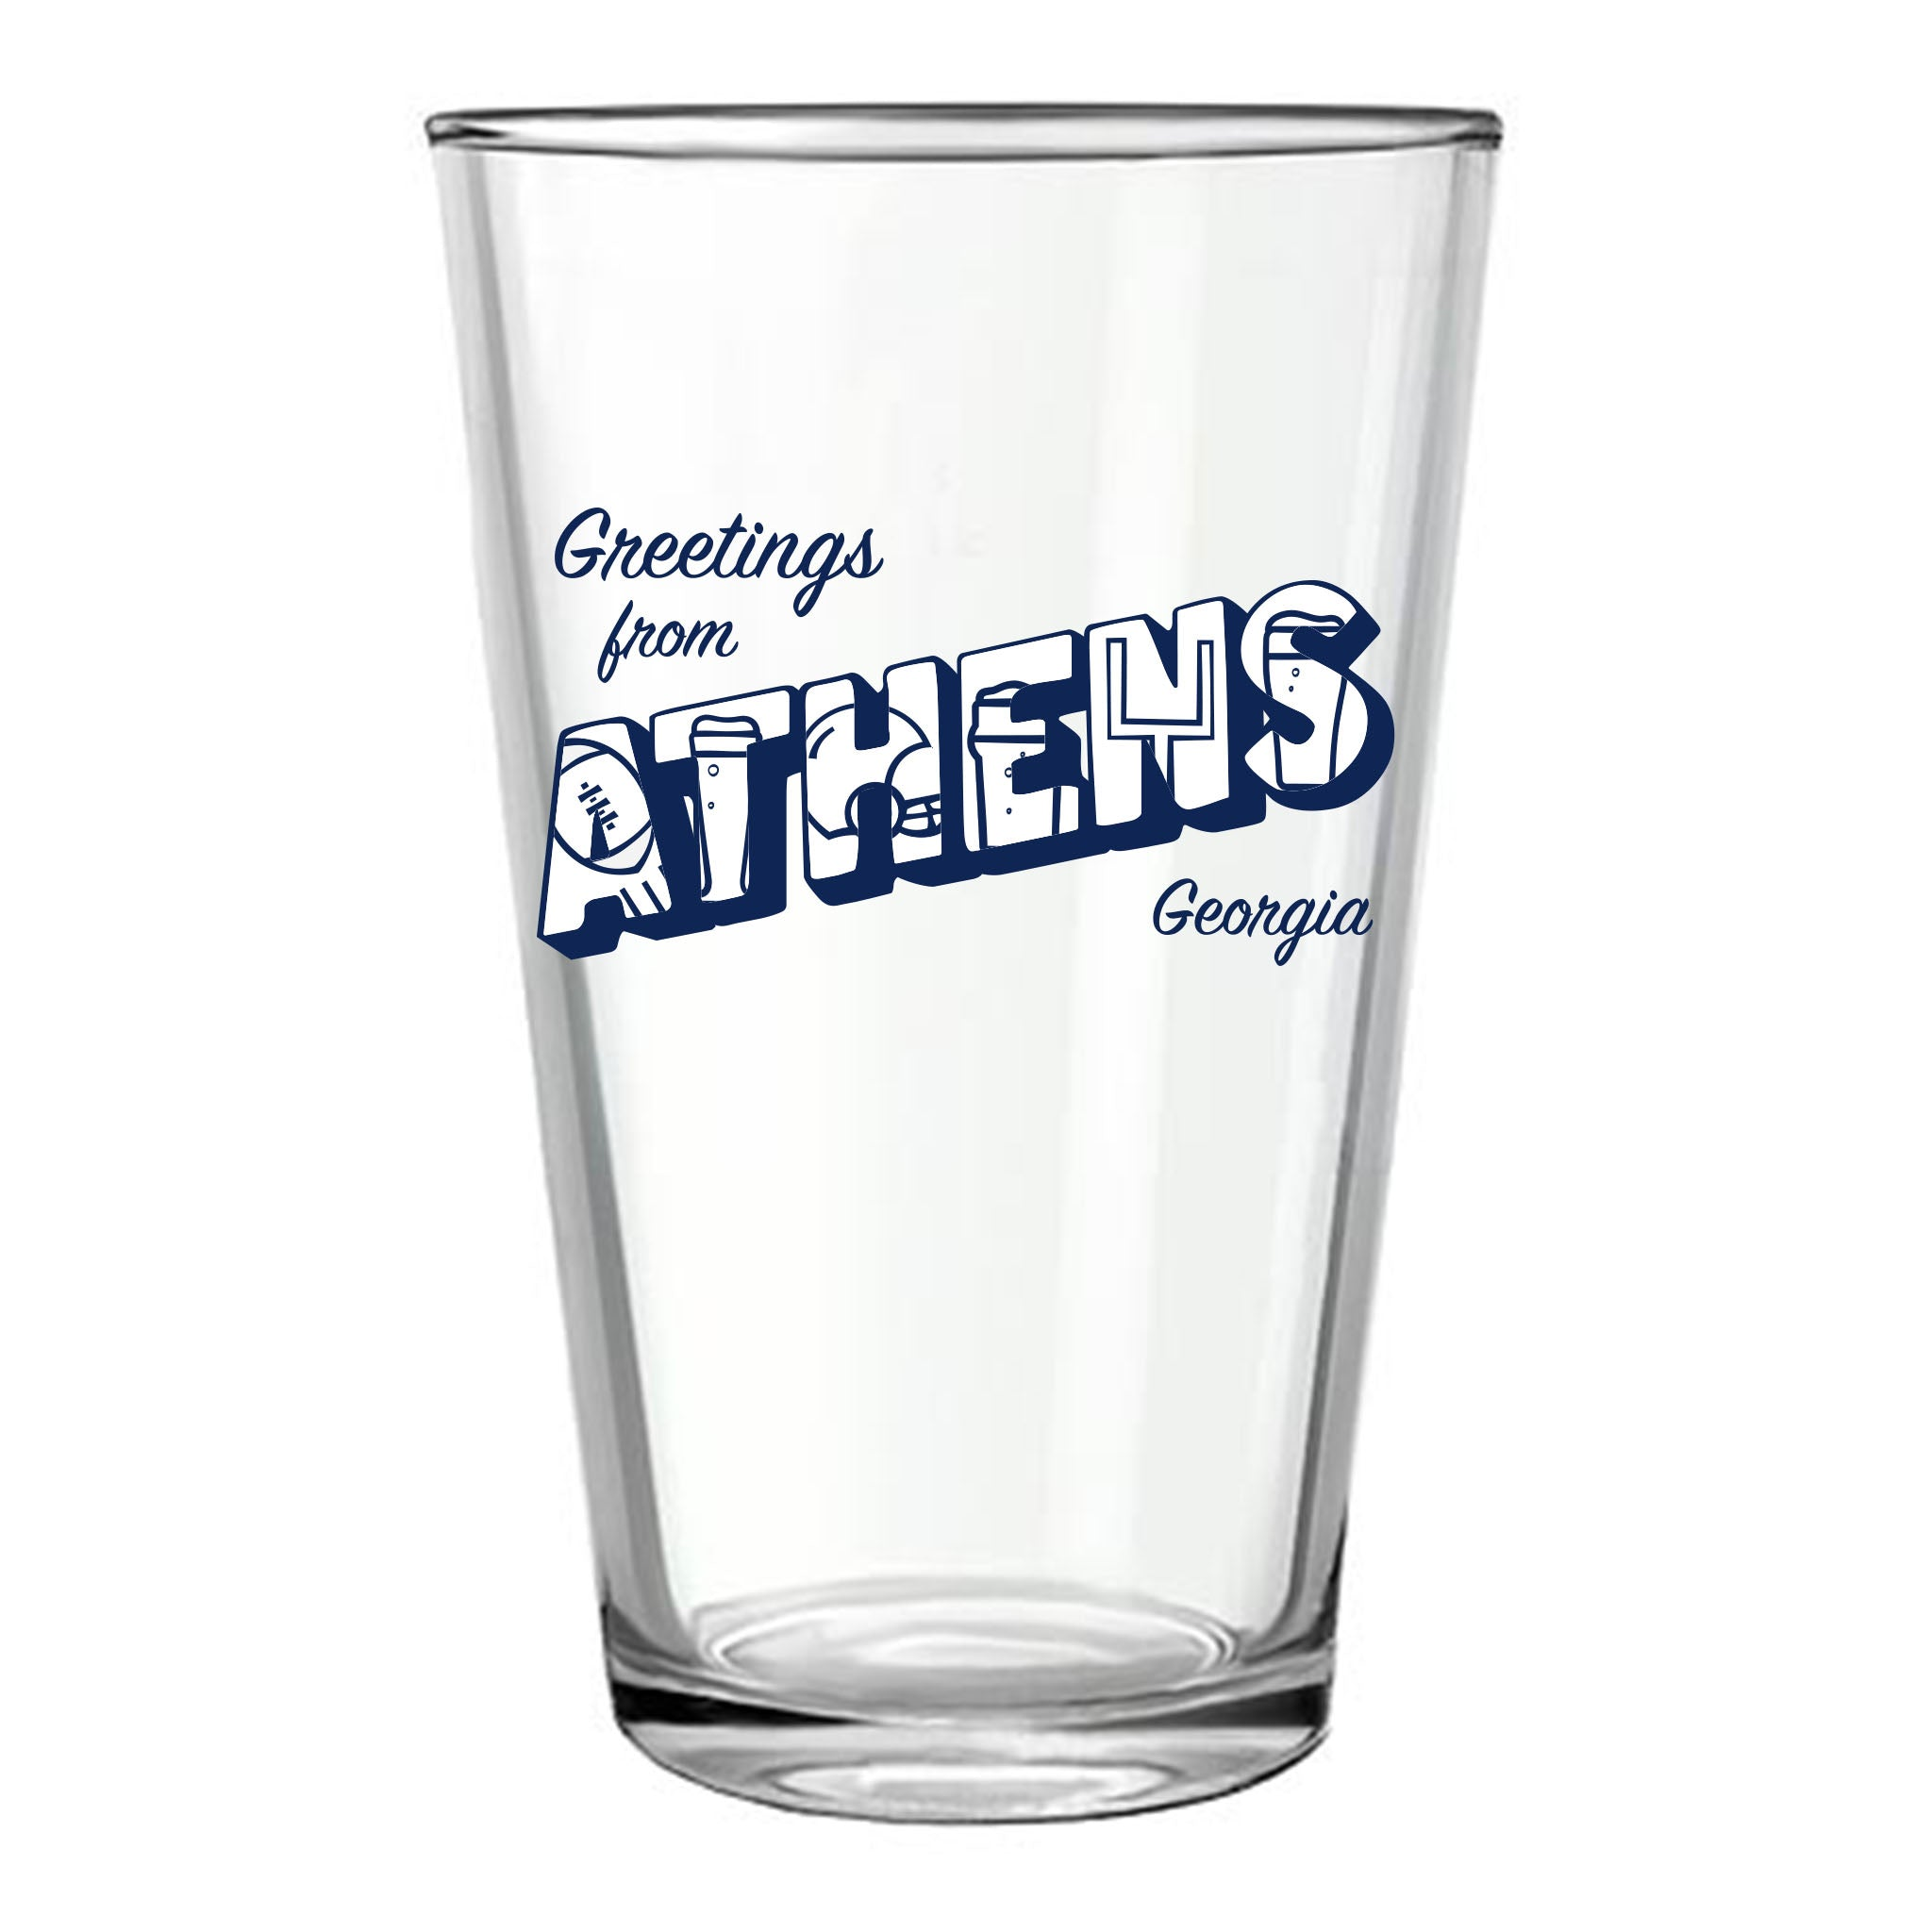 Greetings from Athens Glass